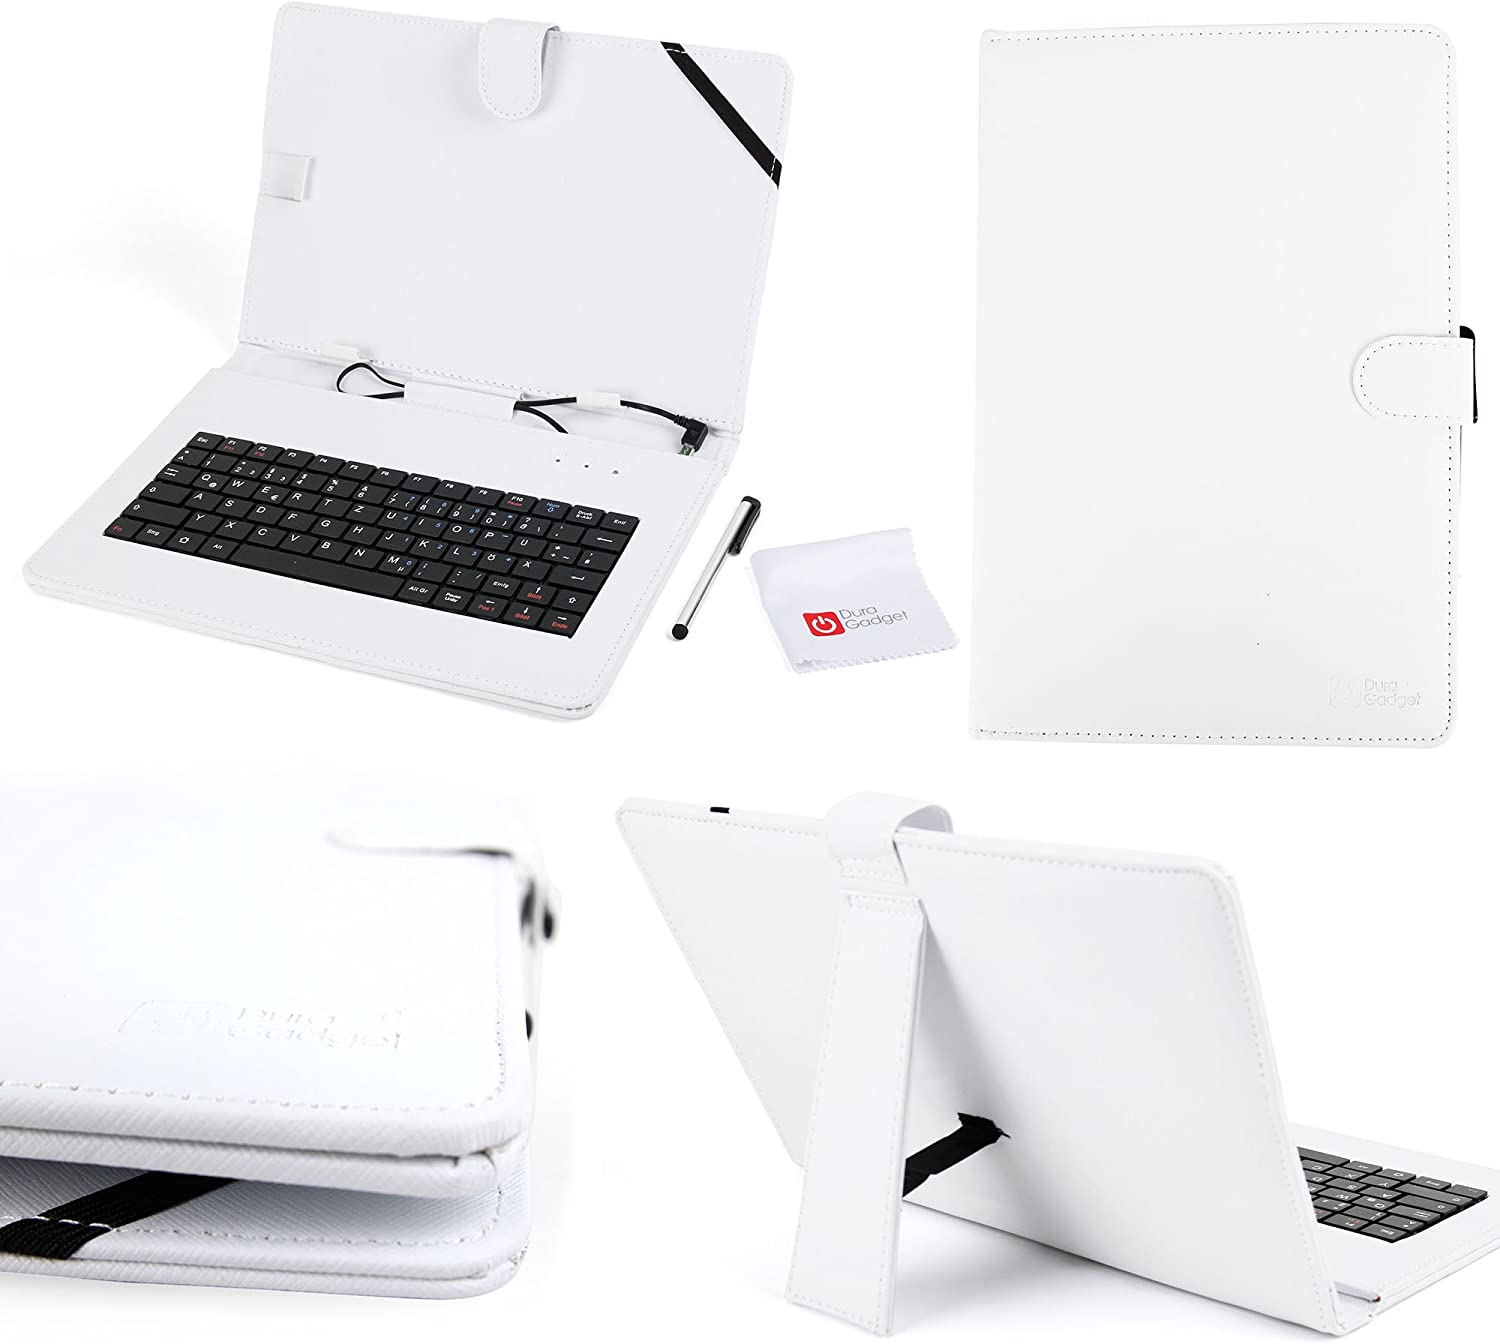 DURAGADGET Bright White Faux Leather Case/Cover with Built-in Micro USB German (QWERTZ) Keyboard - Suitable for Acer Iconia Tab 10 A3-A20